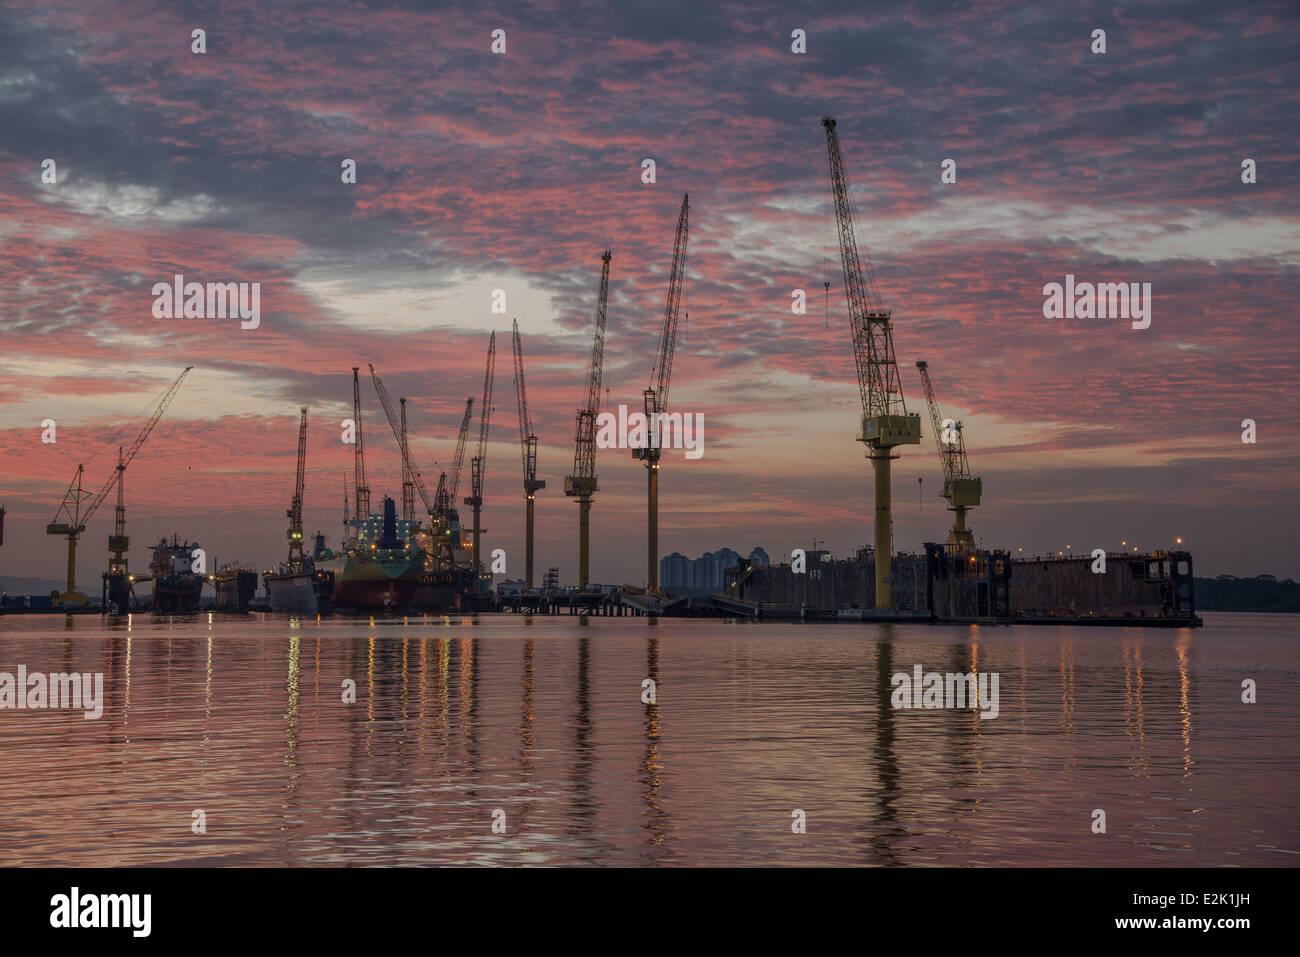 Ships at a dry dock as the sun sets in Singapore - Stock Image